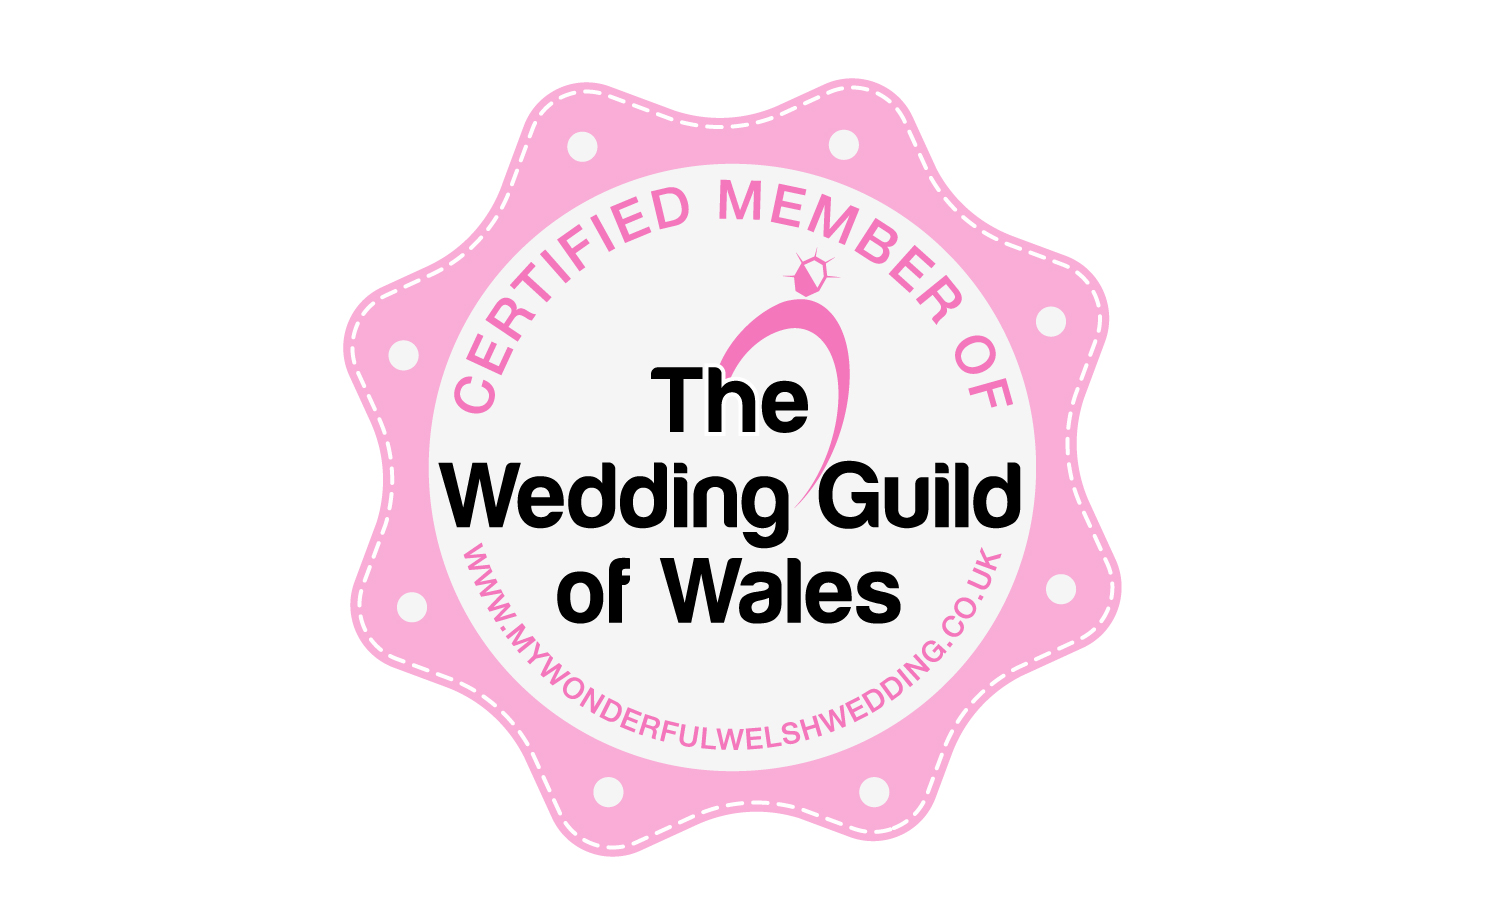 Spiros' Partners - The Wedding Guild Of Wales